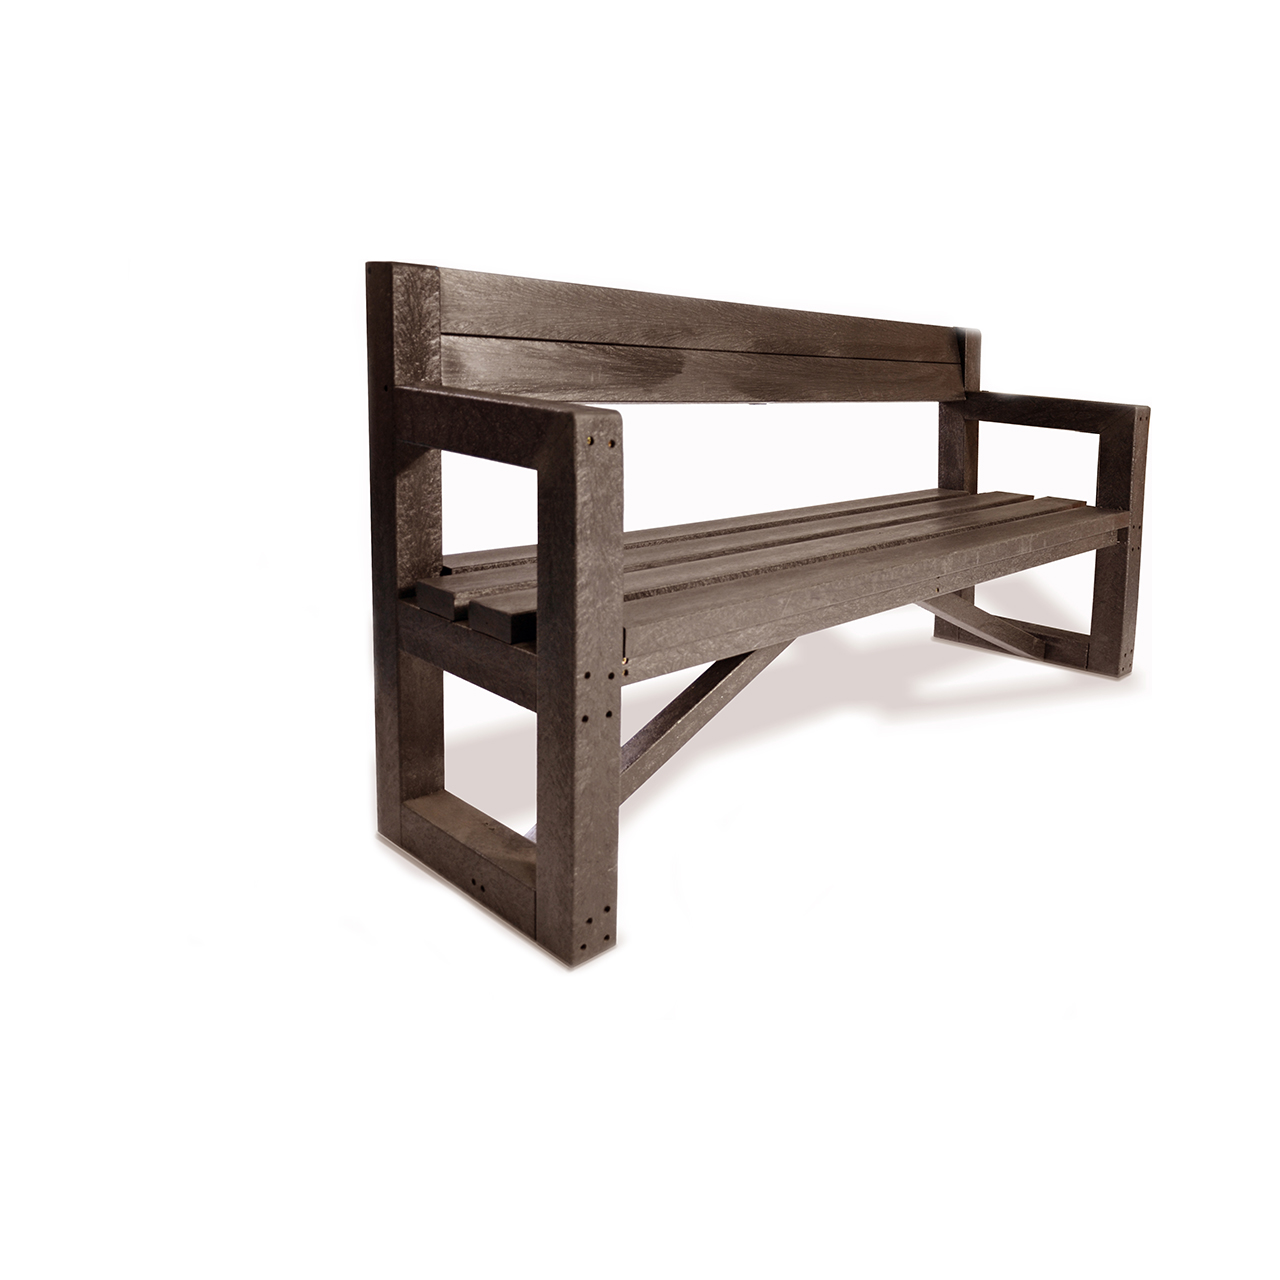 Plaswood Our City Bench Fully Assembled 1700mm - Brown image 1